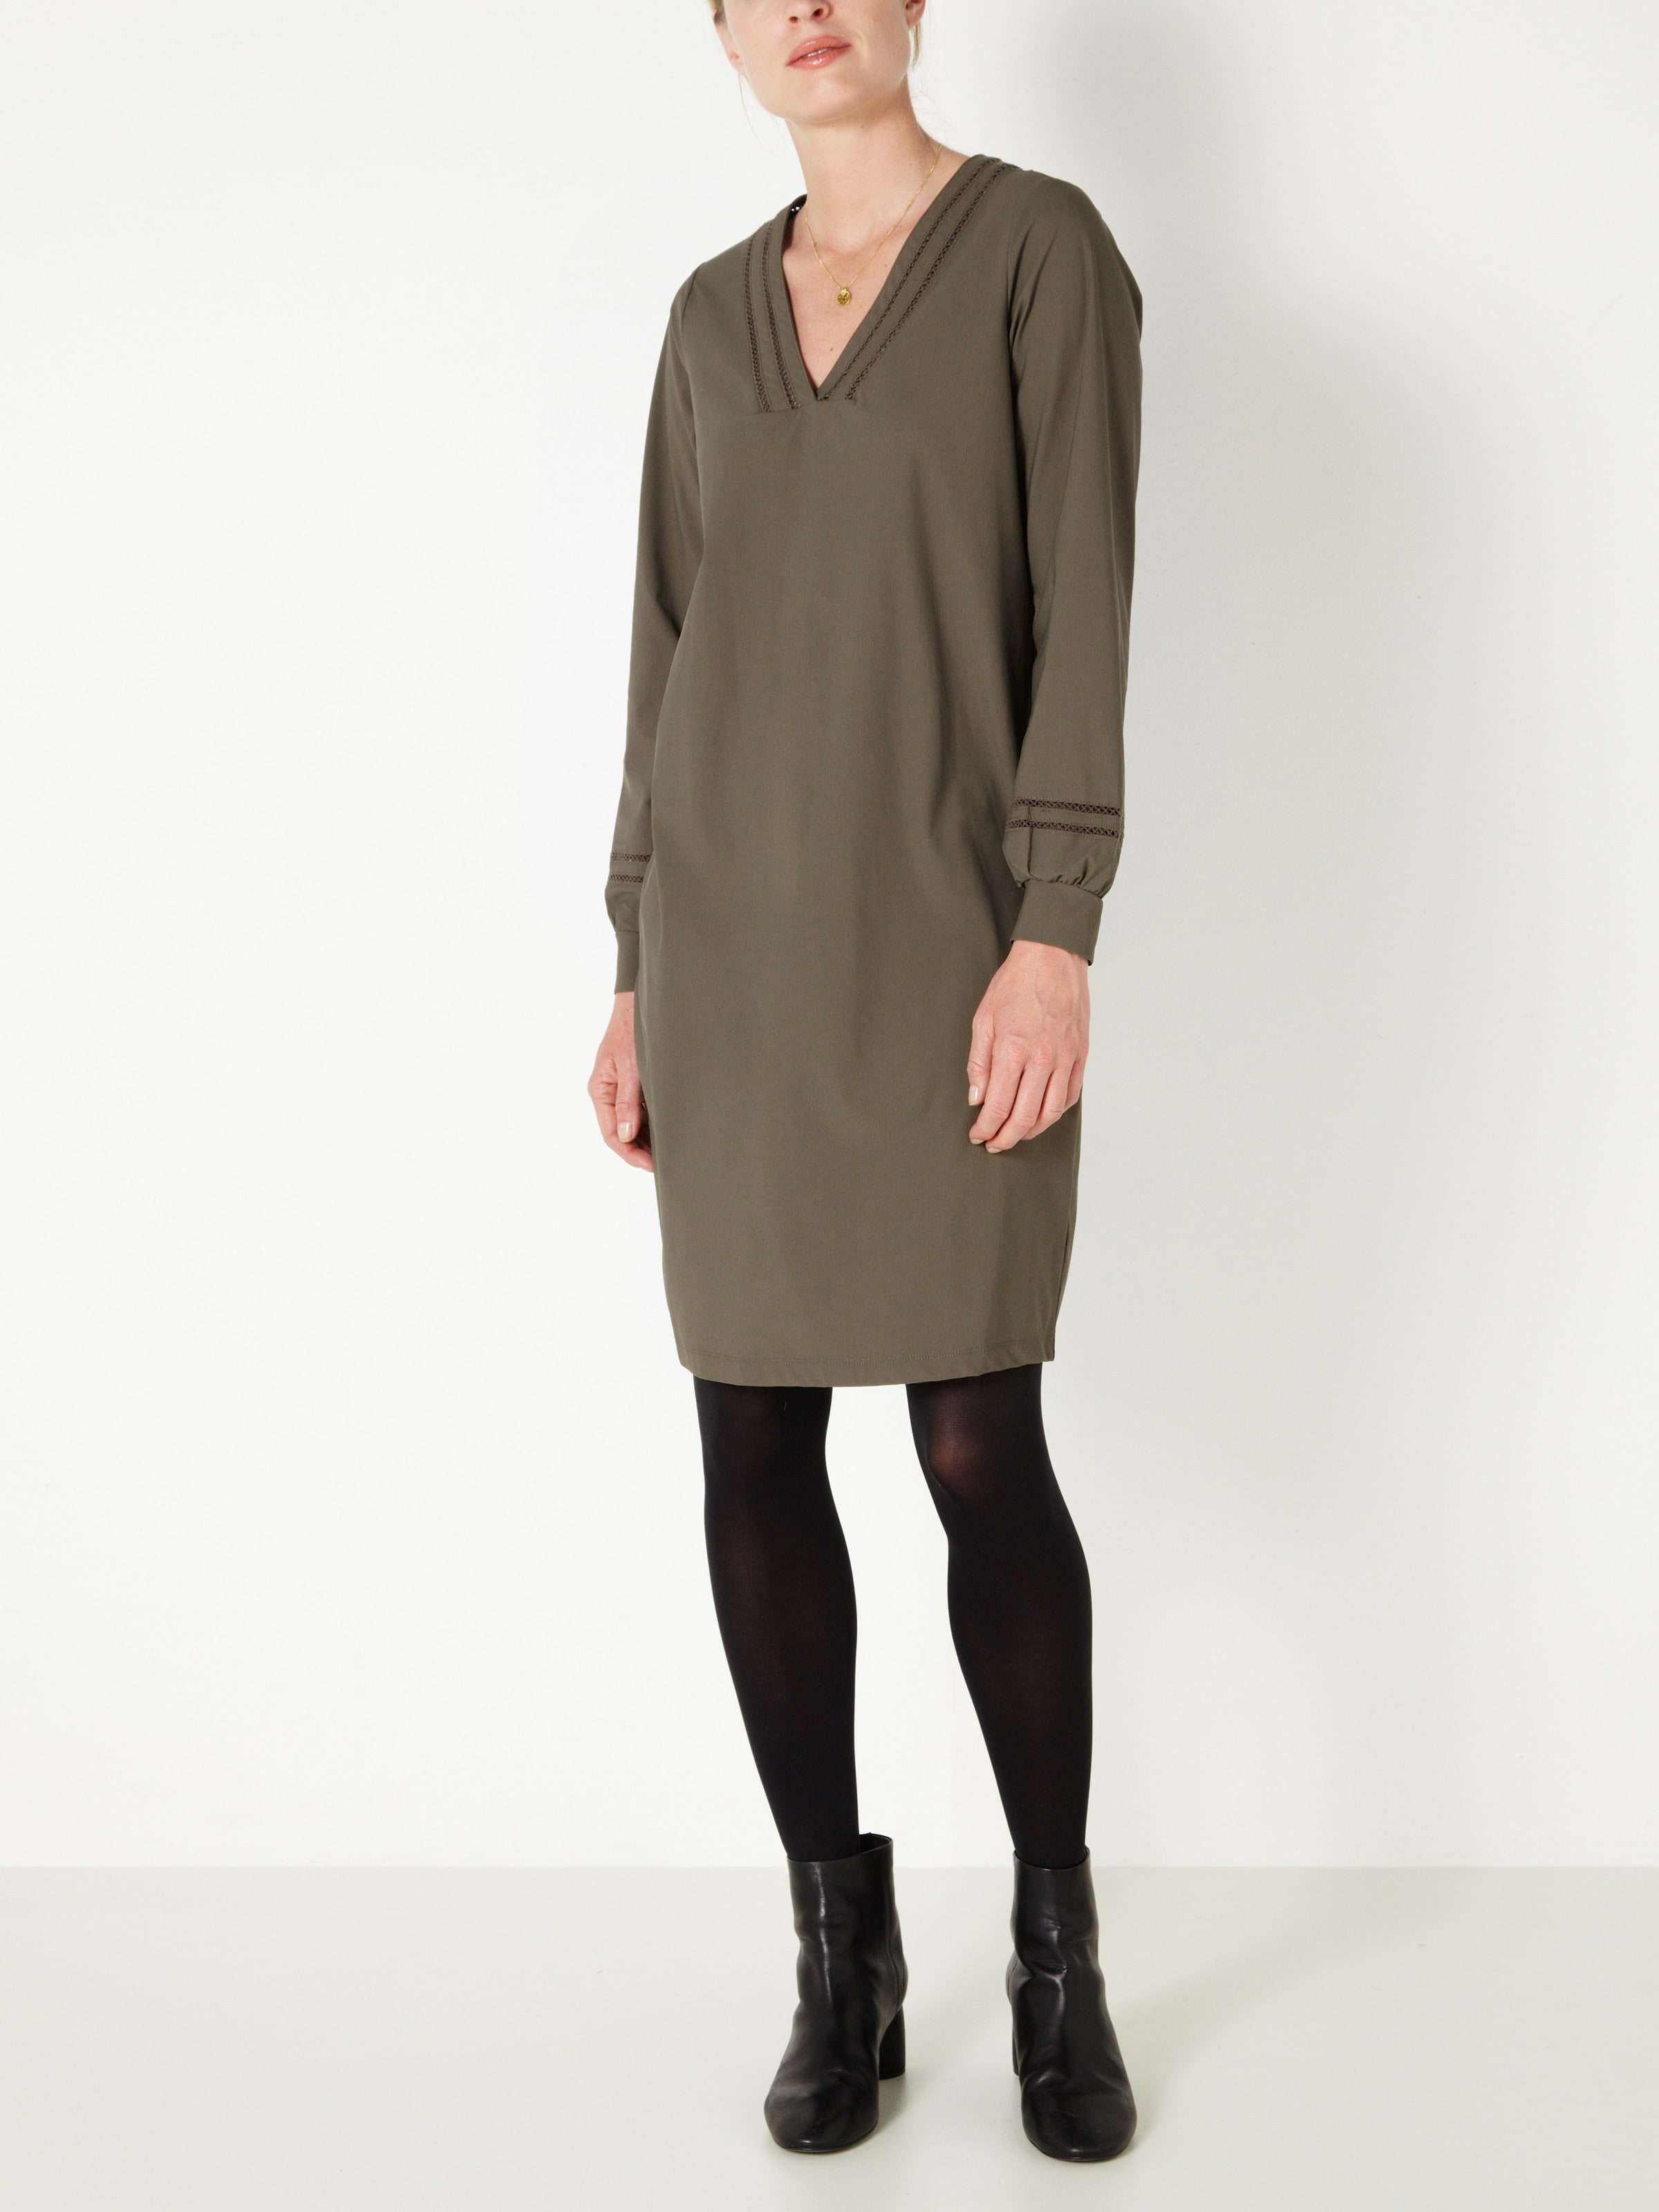 Kleid Sandwich In Khaki Khaki Kleid Sandwich In Sandwich RcL54ASj3q